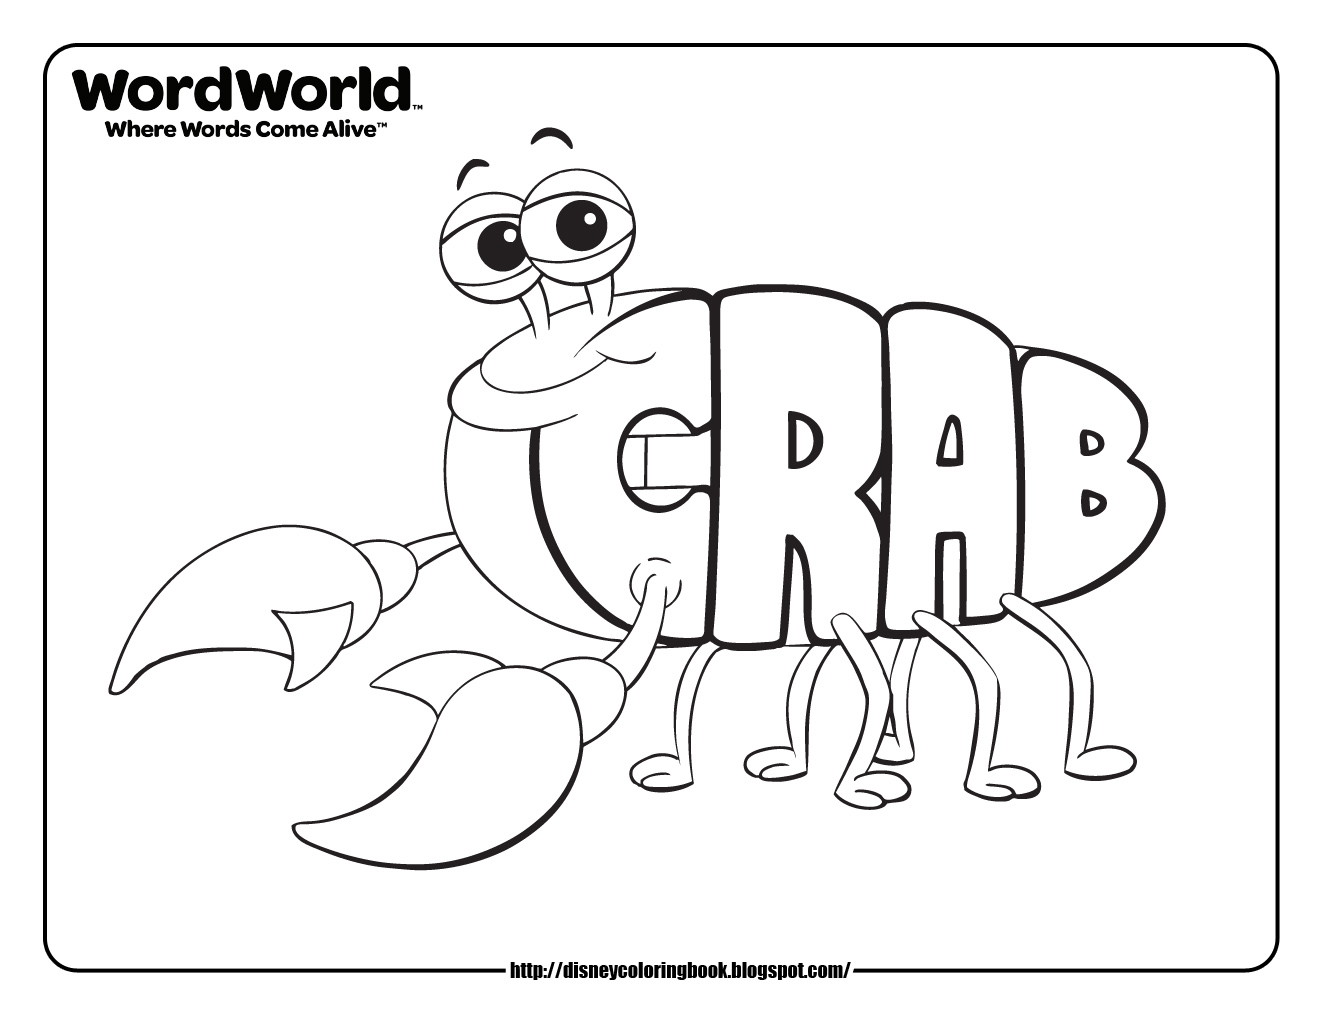 Disney Coloring Pages And Sheets For Kids Wordworld 2 Word World Coloring Pages